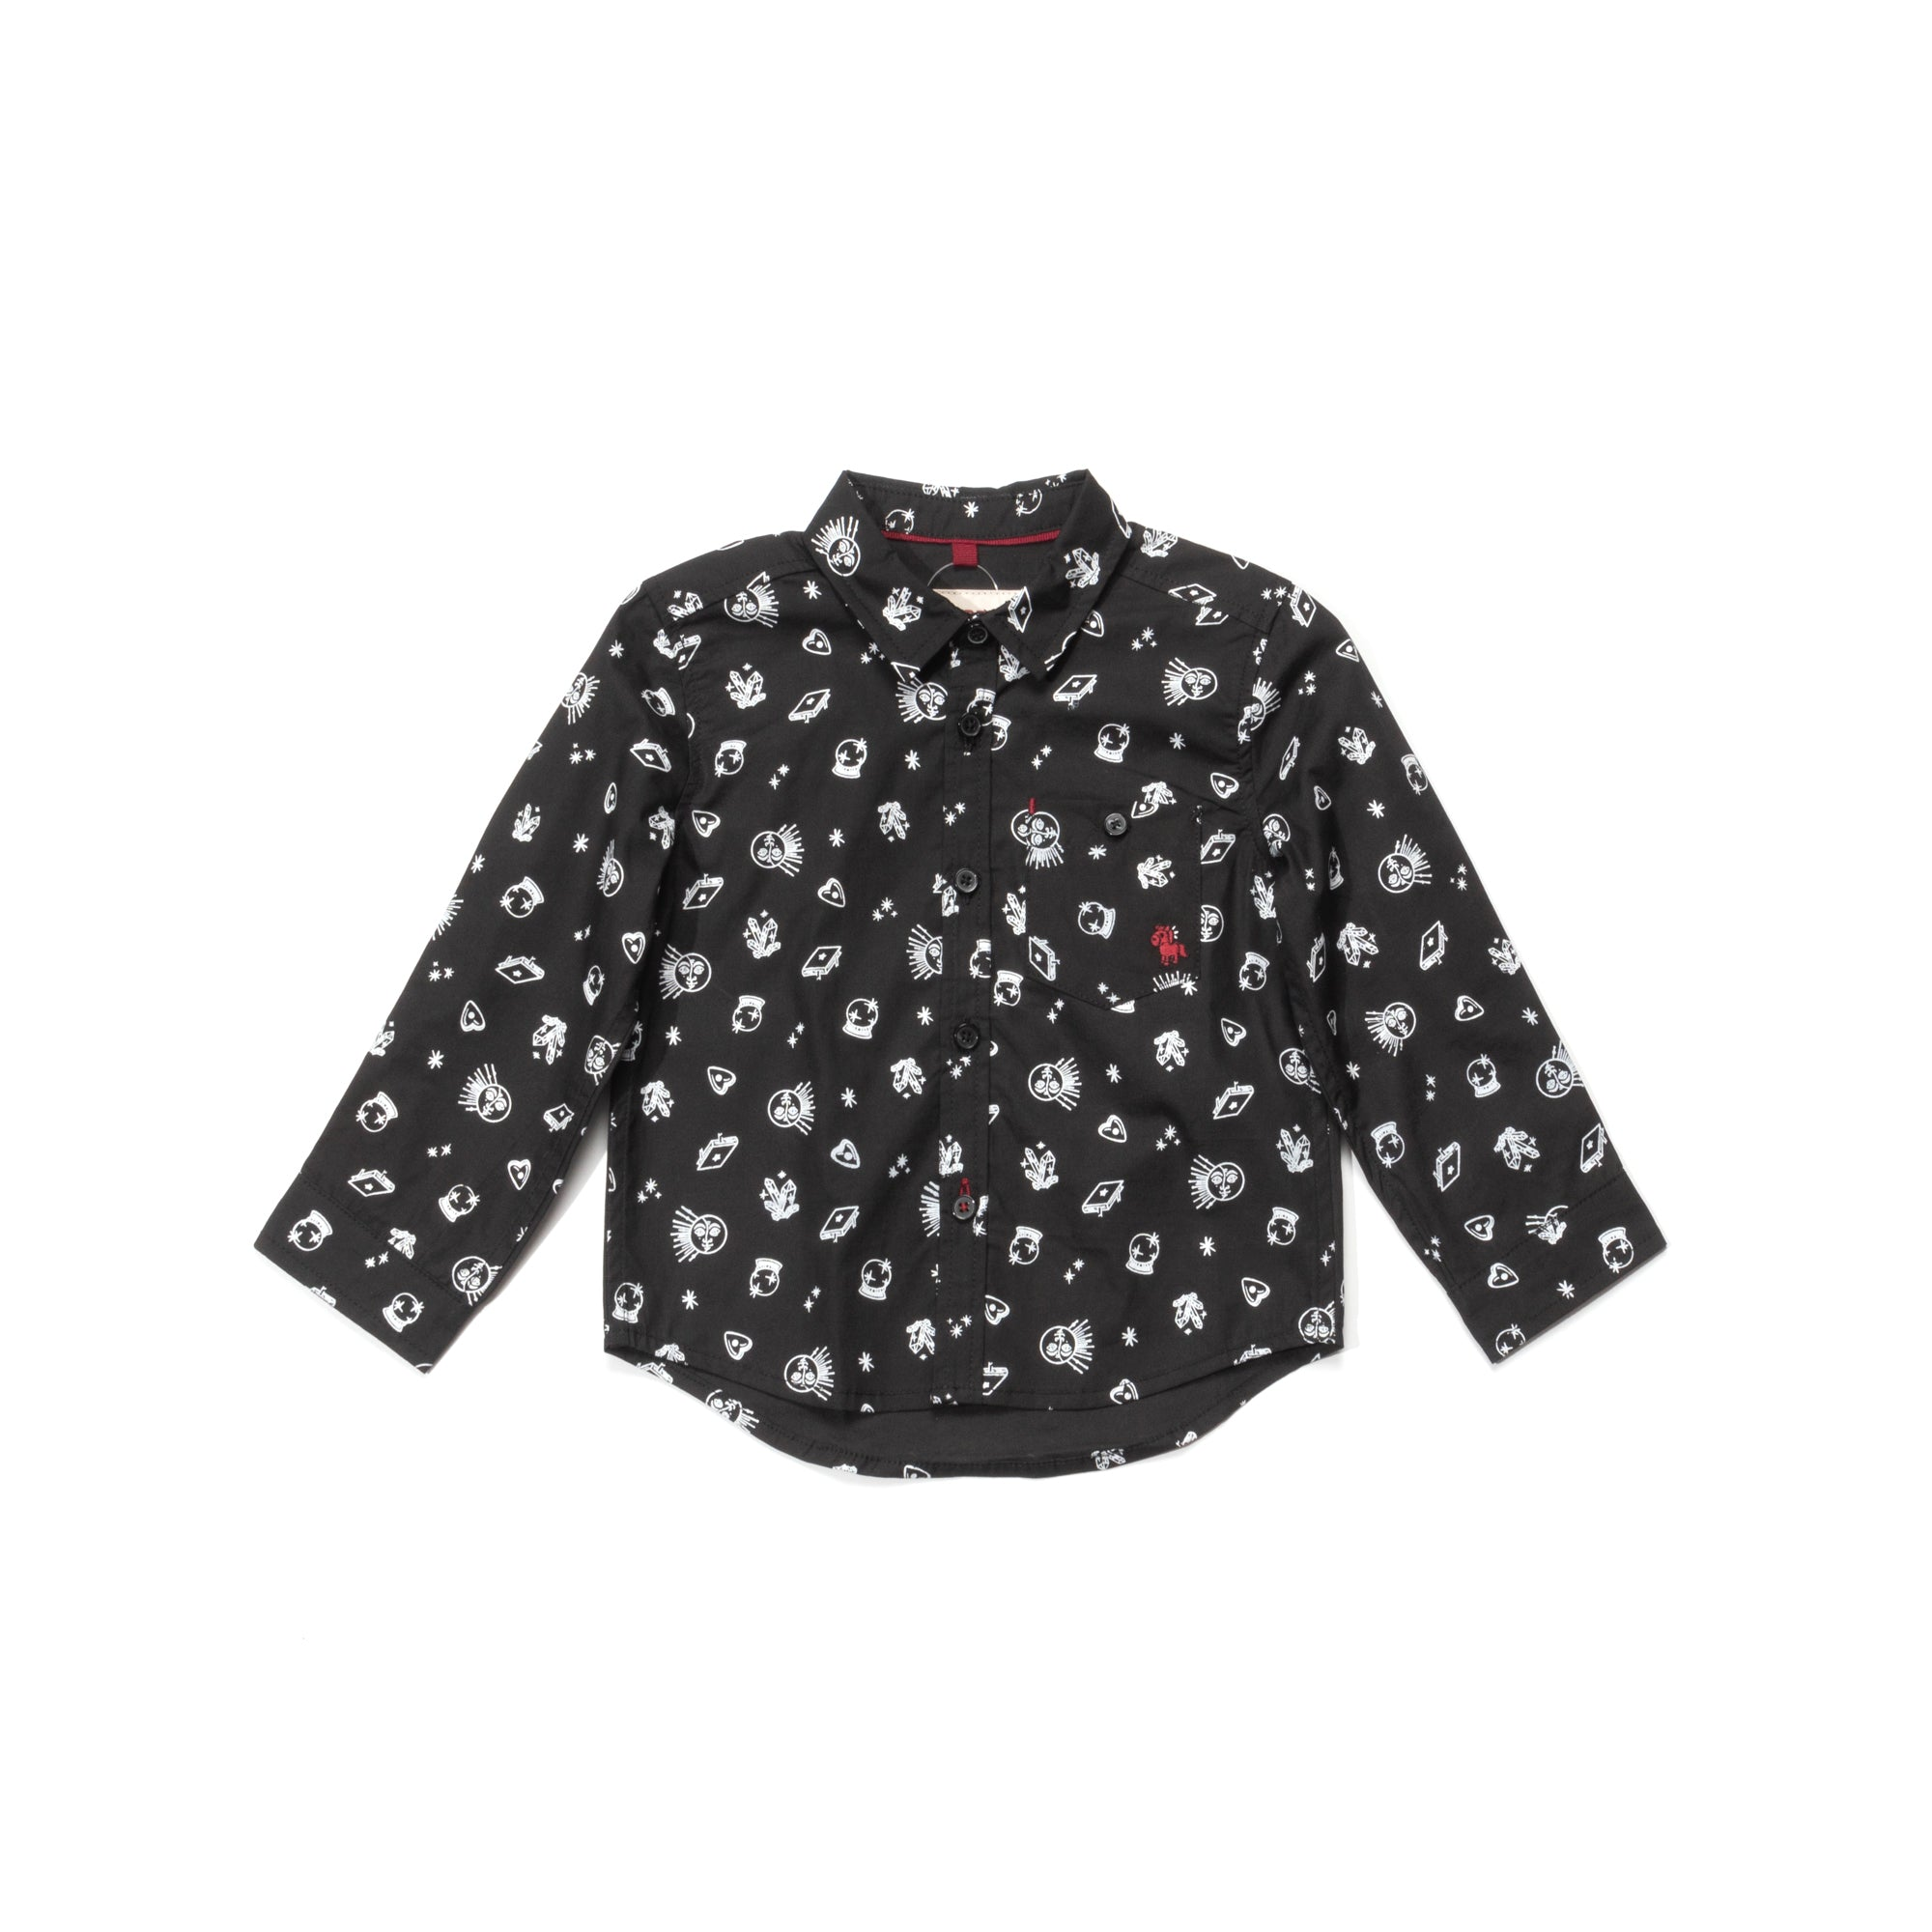 Poney Baby Boys Black Long Sleeve Shirt 2049